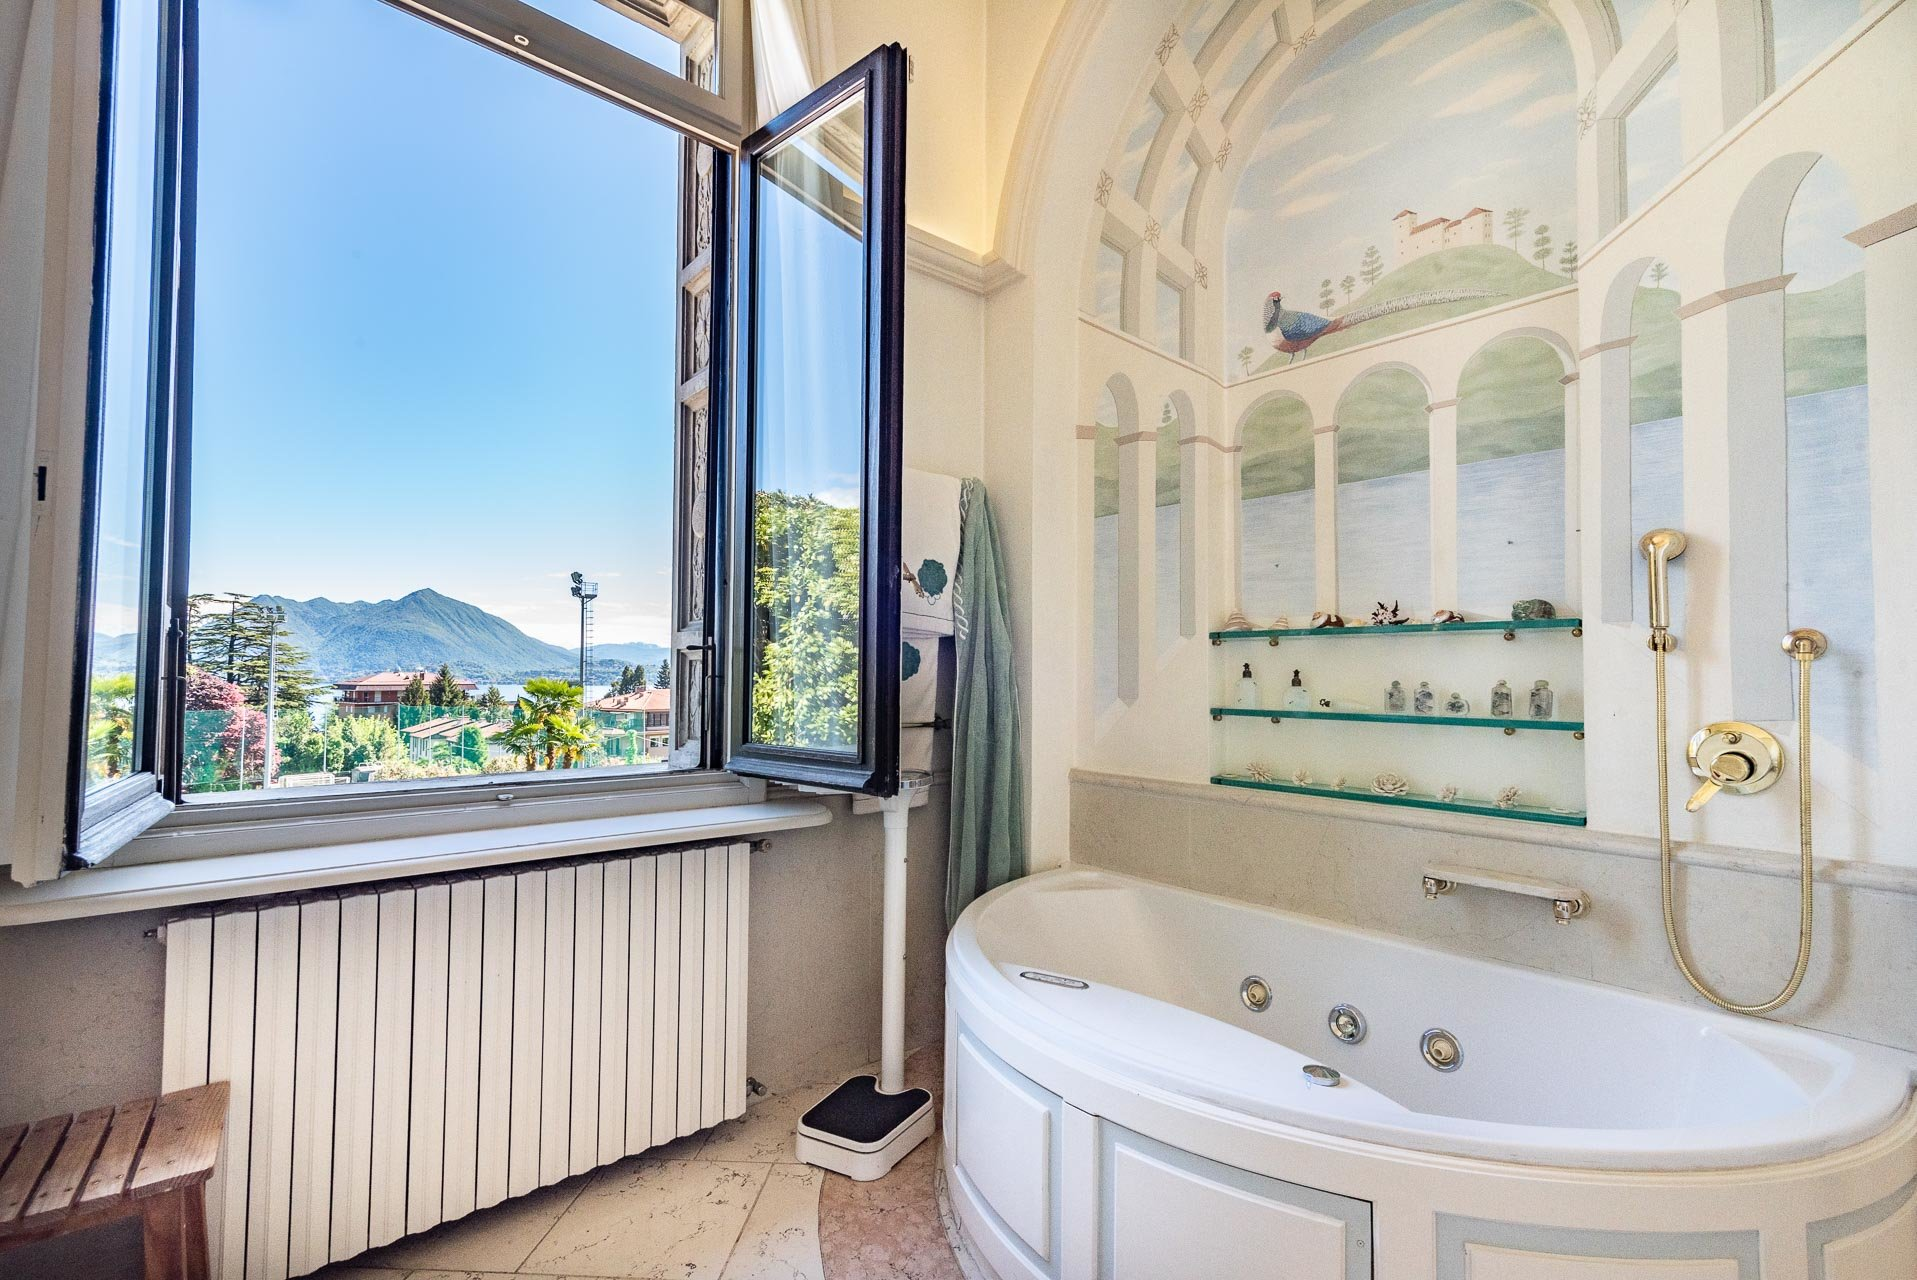 Luxurious apartment for sale in a villa in Stresa - bathroom with bathtub